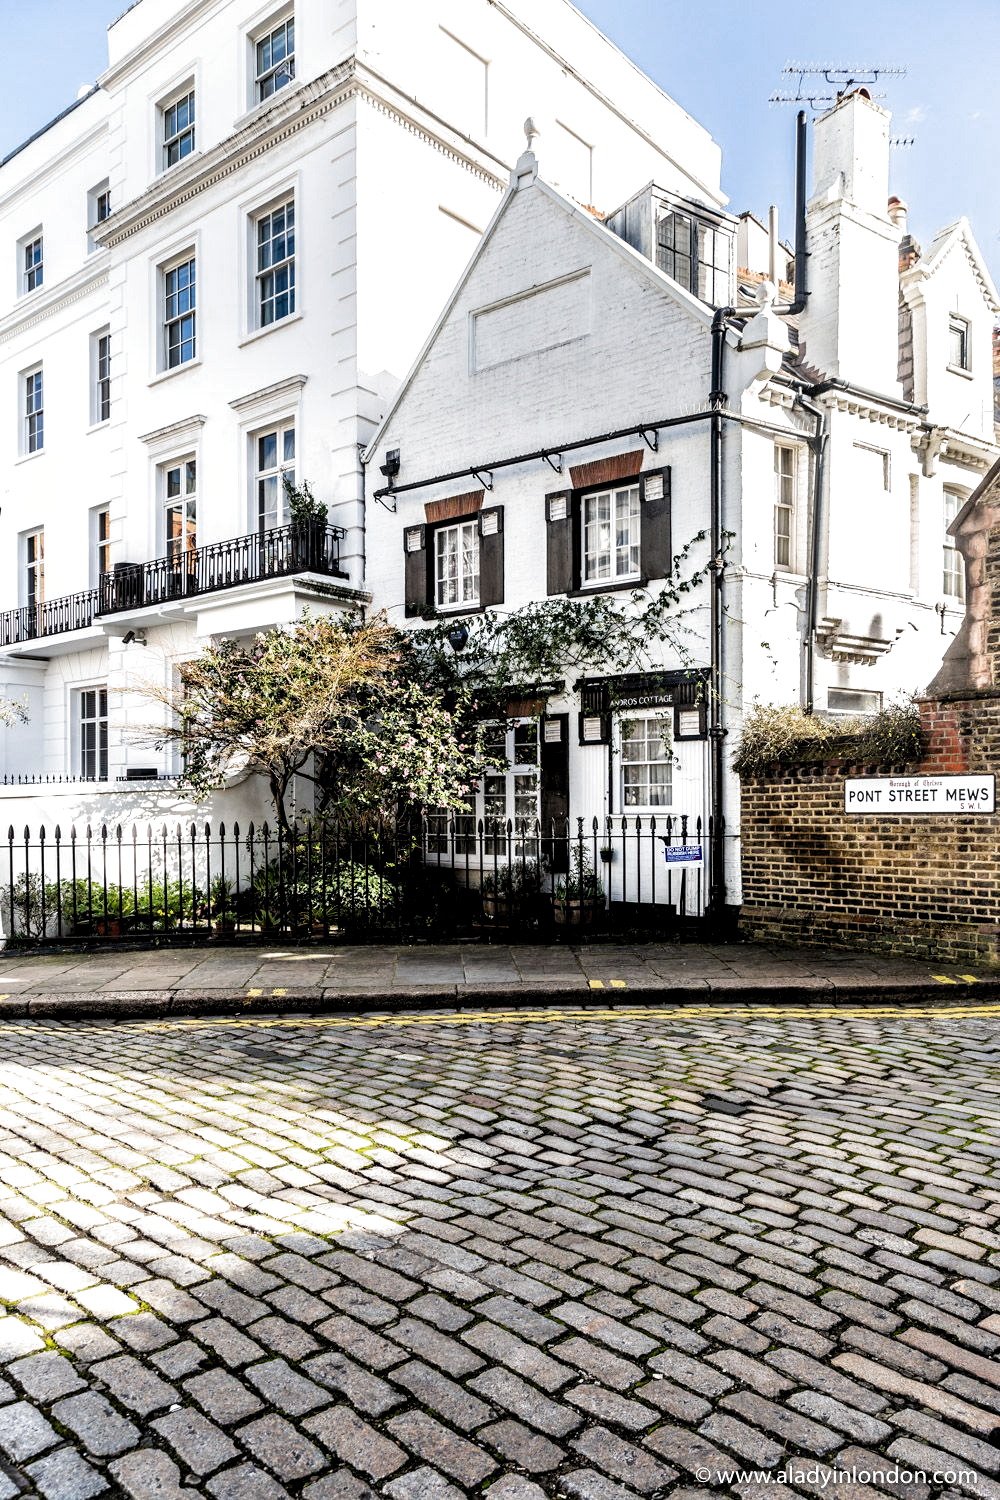 Seeing this beautiful corner in Knightsbridge, London is one of many free things to do in London. This guide to Knightsbridge will show you everything from mews streets to Knightsbridge luxury shops and Harrods. #london #knightsbridge #mews #house